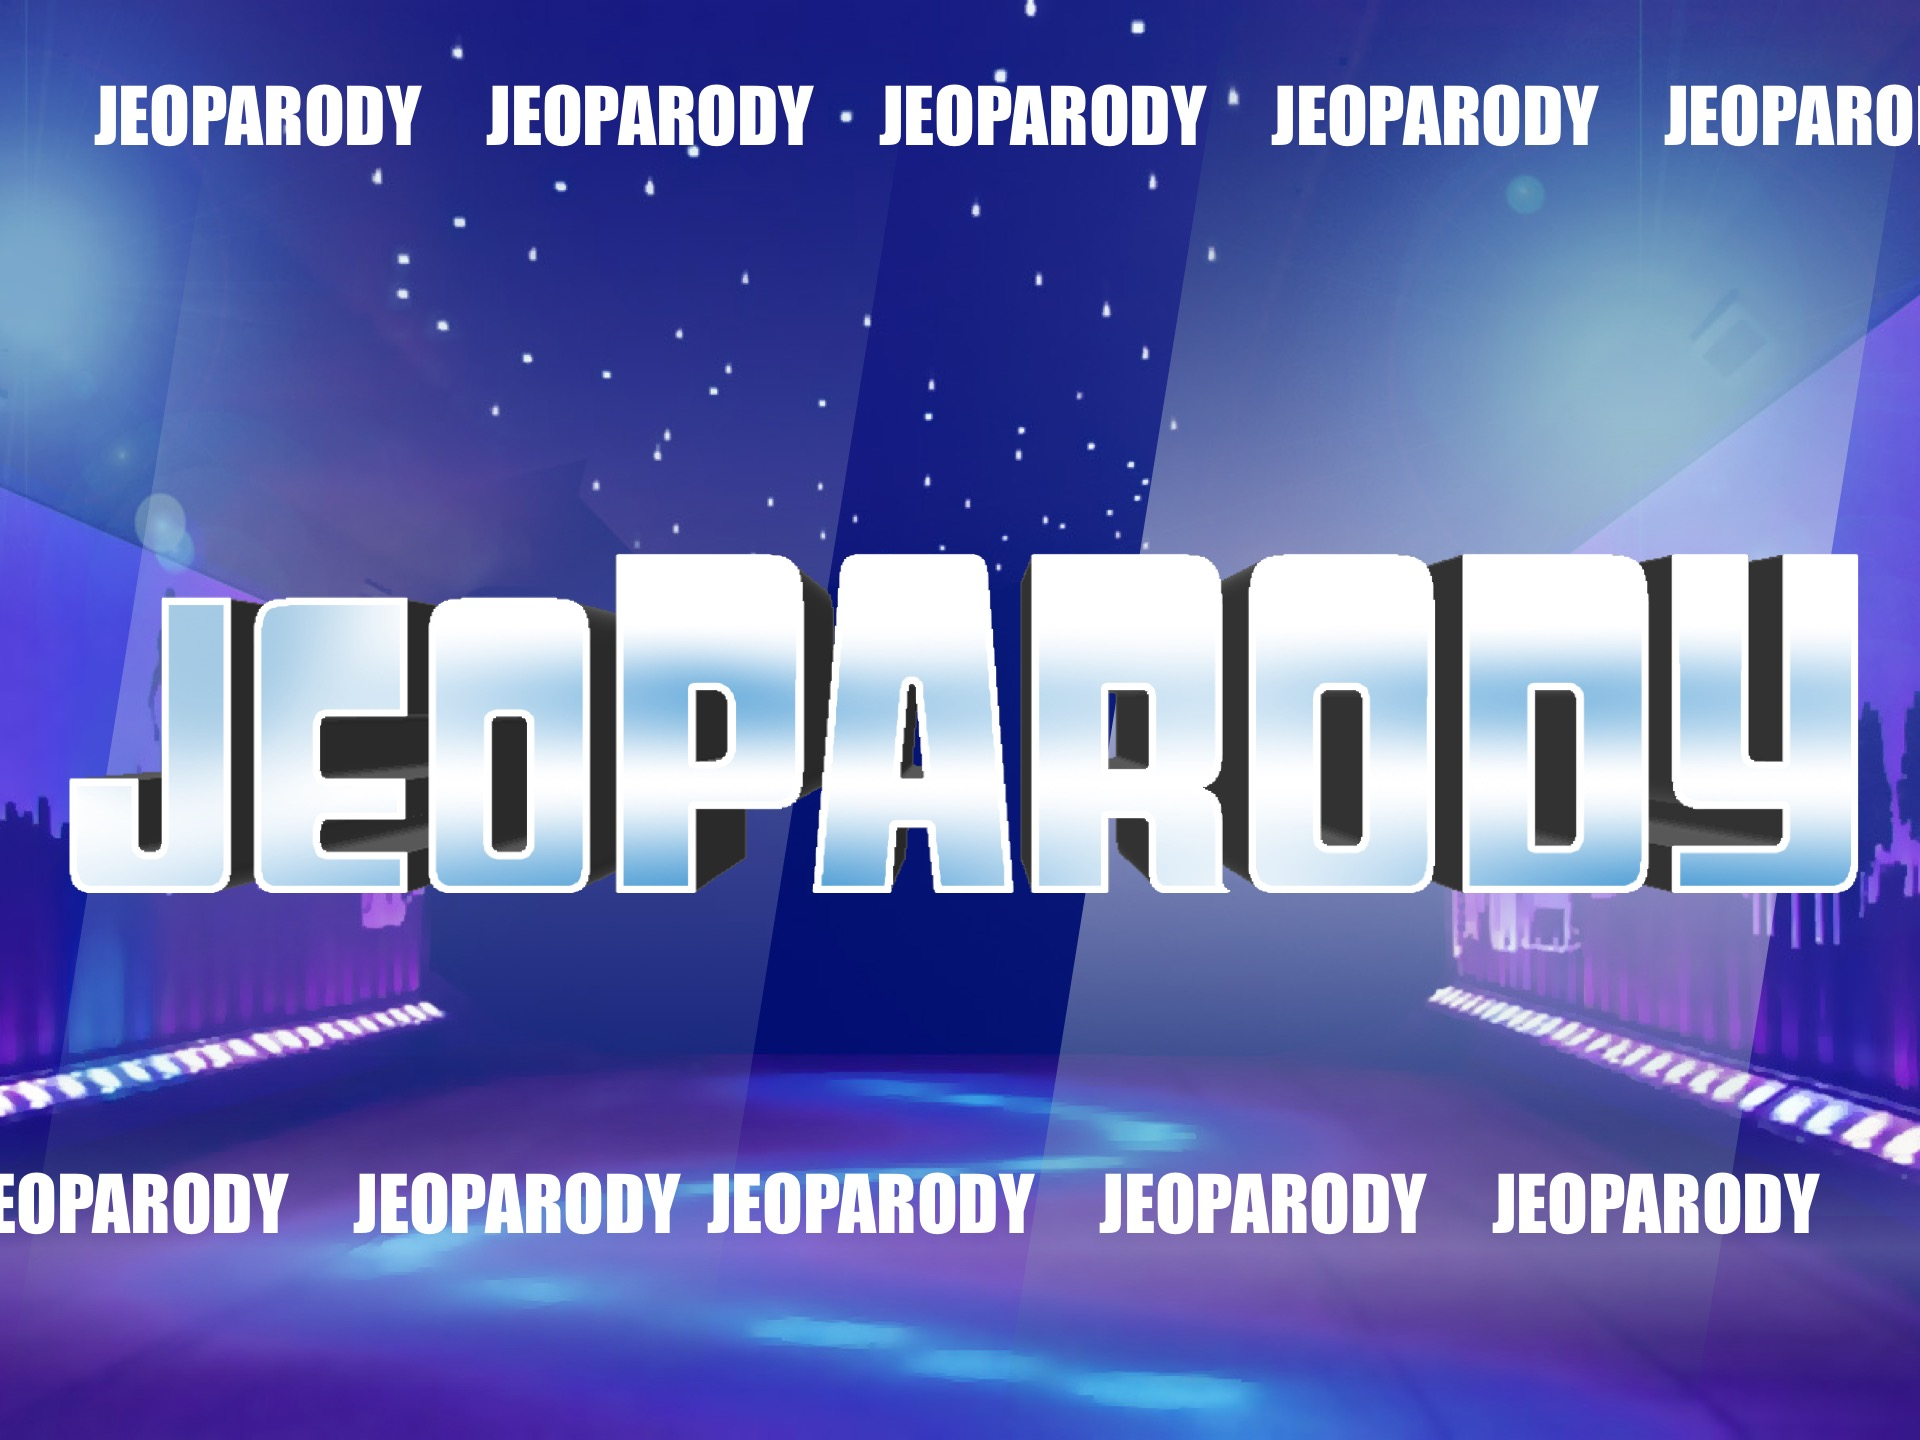 Jeopardy powerpoint game template youth downloadsyouth downloads description toneelgroepblik Image collections